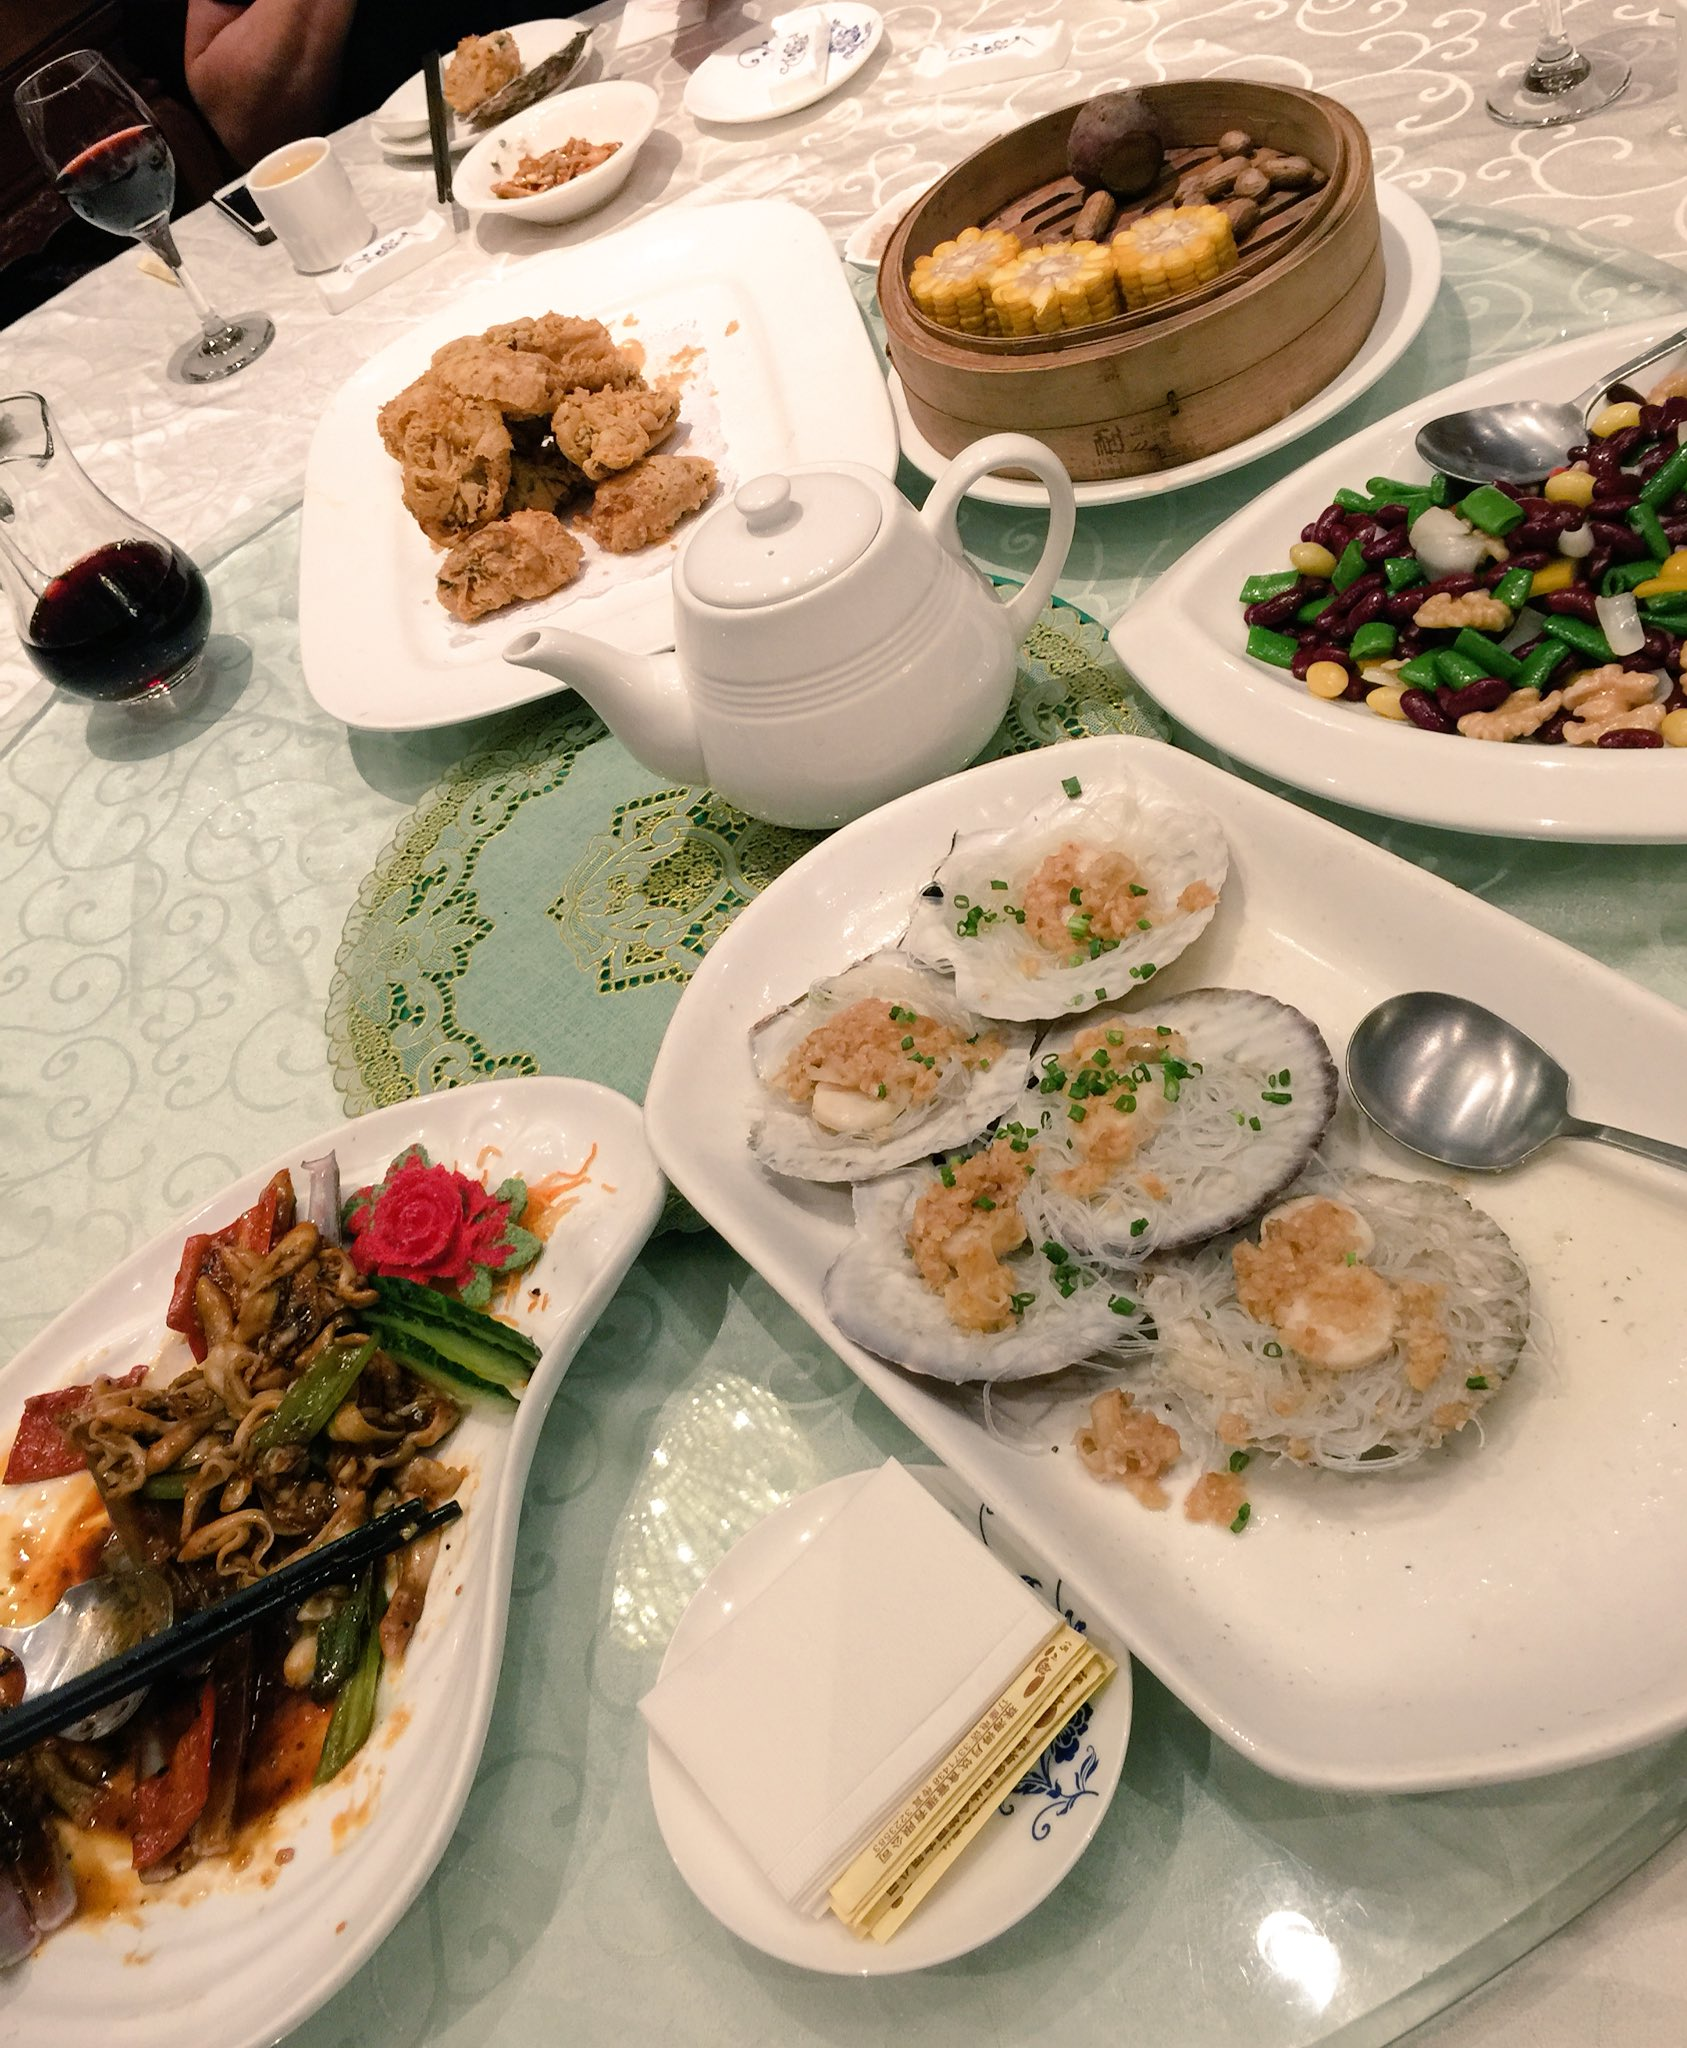 Finishing our #cahht17 with a seafood dinner at De Yue Restaurant on Yeli Island in Zhuhai. https://t.co/Z5teYh5OLr